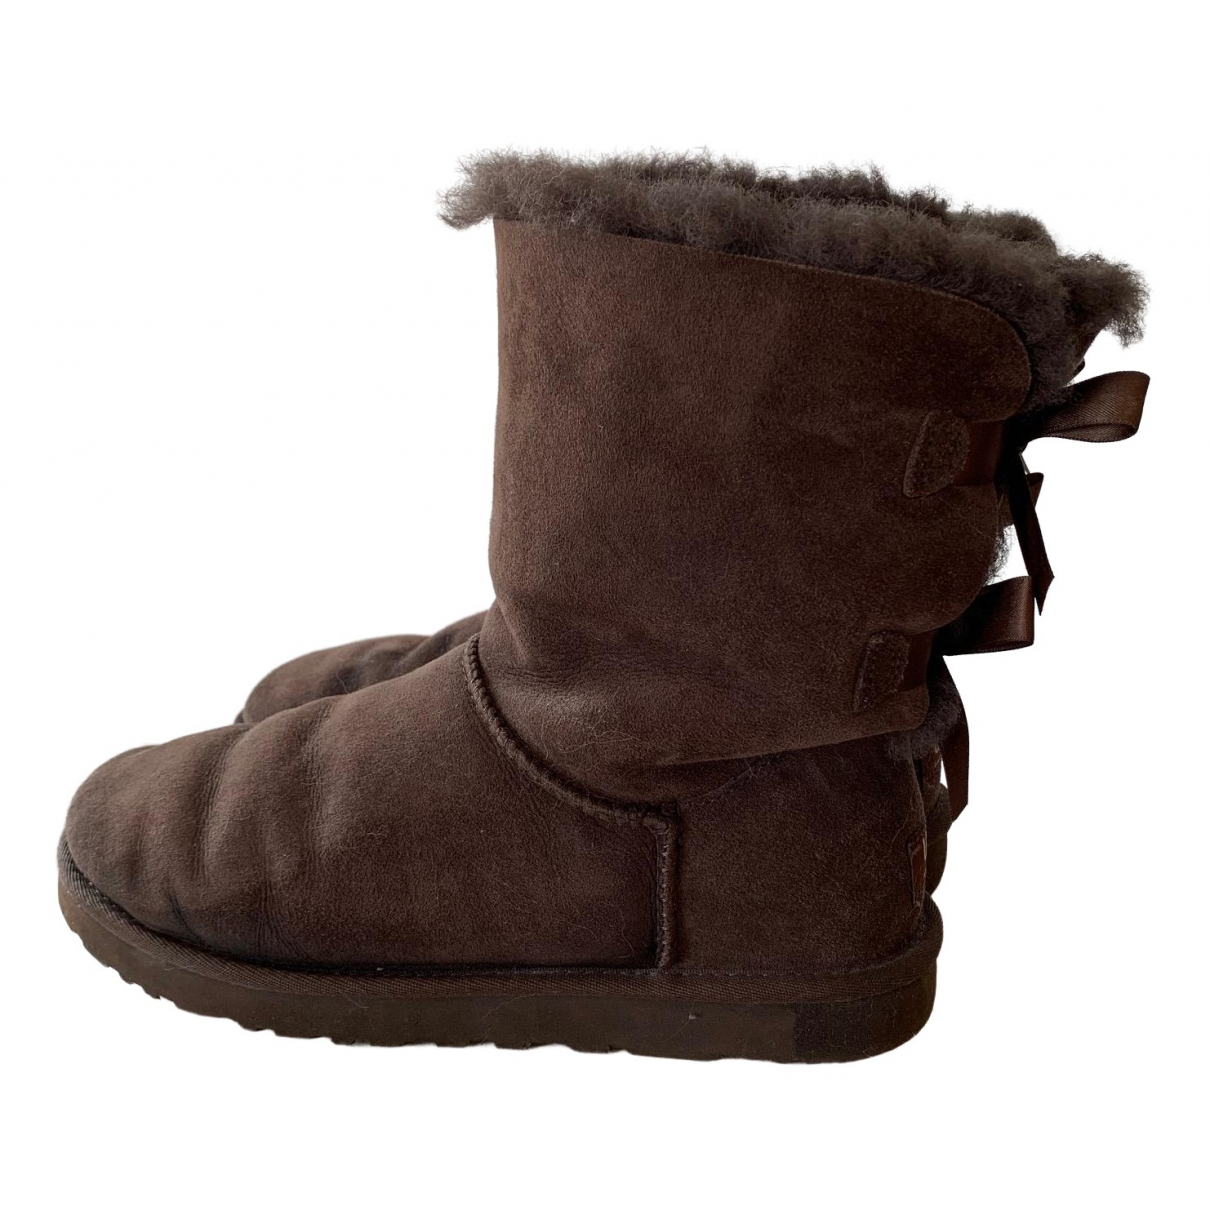 Ugg \N Brown Suede Boots for Women 8 US